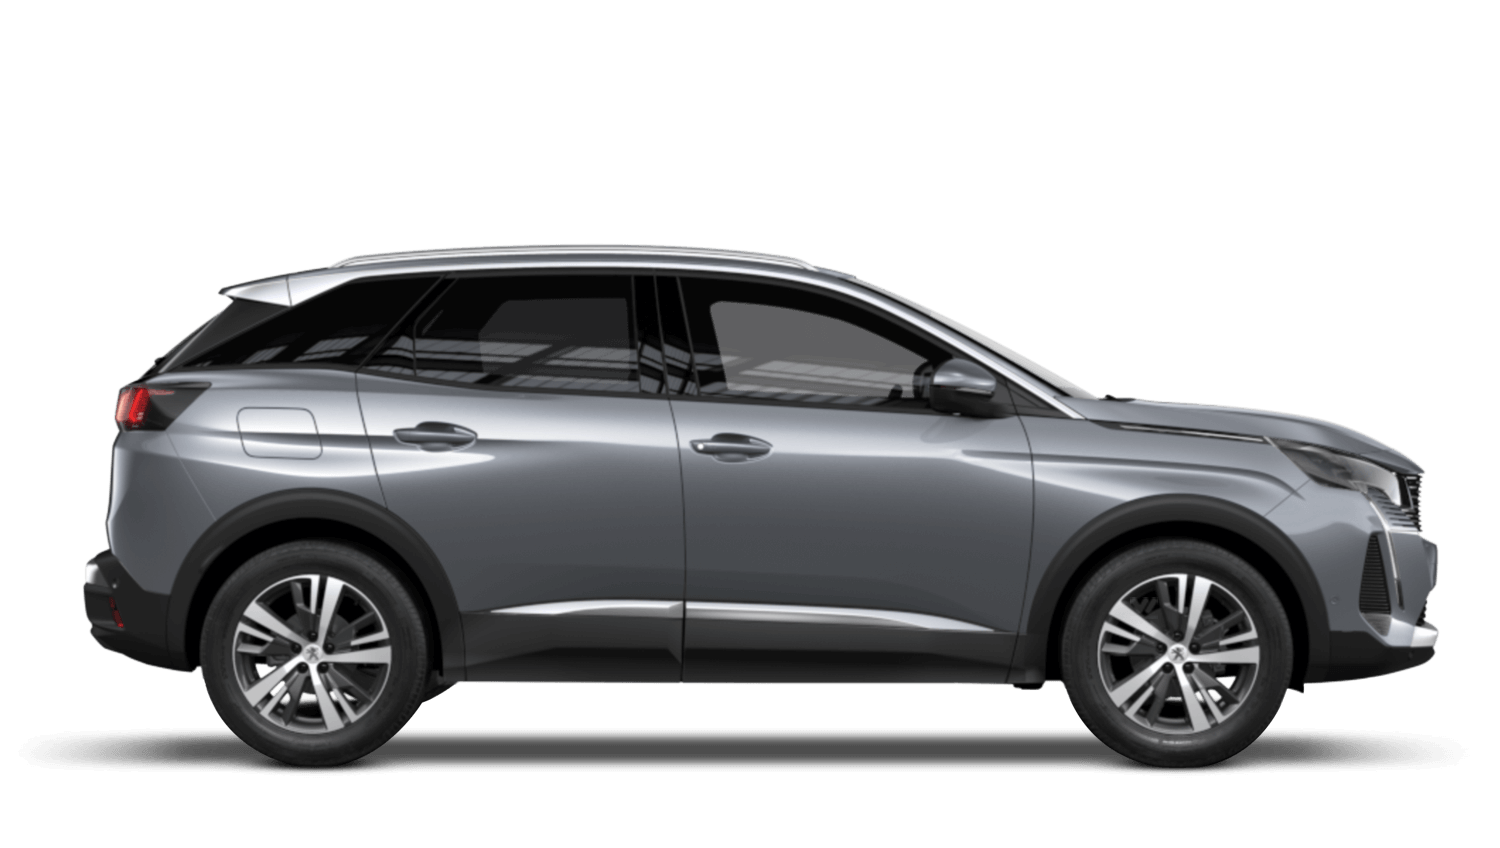 Cumulus Grey New Peugeot 3008 SUV